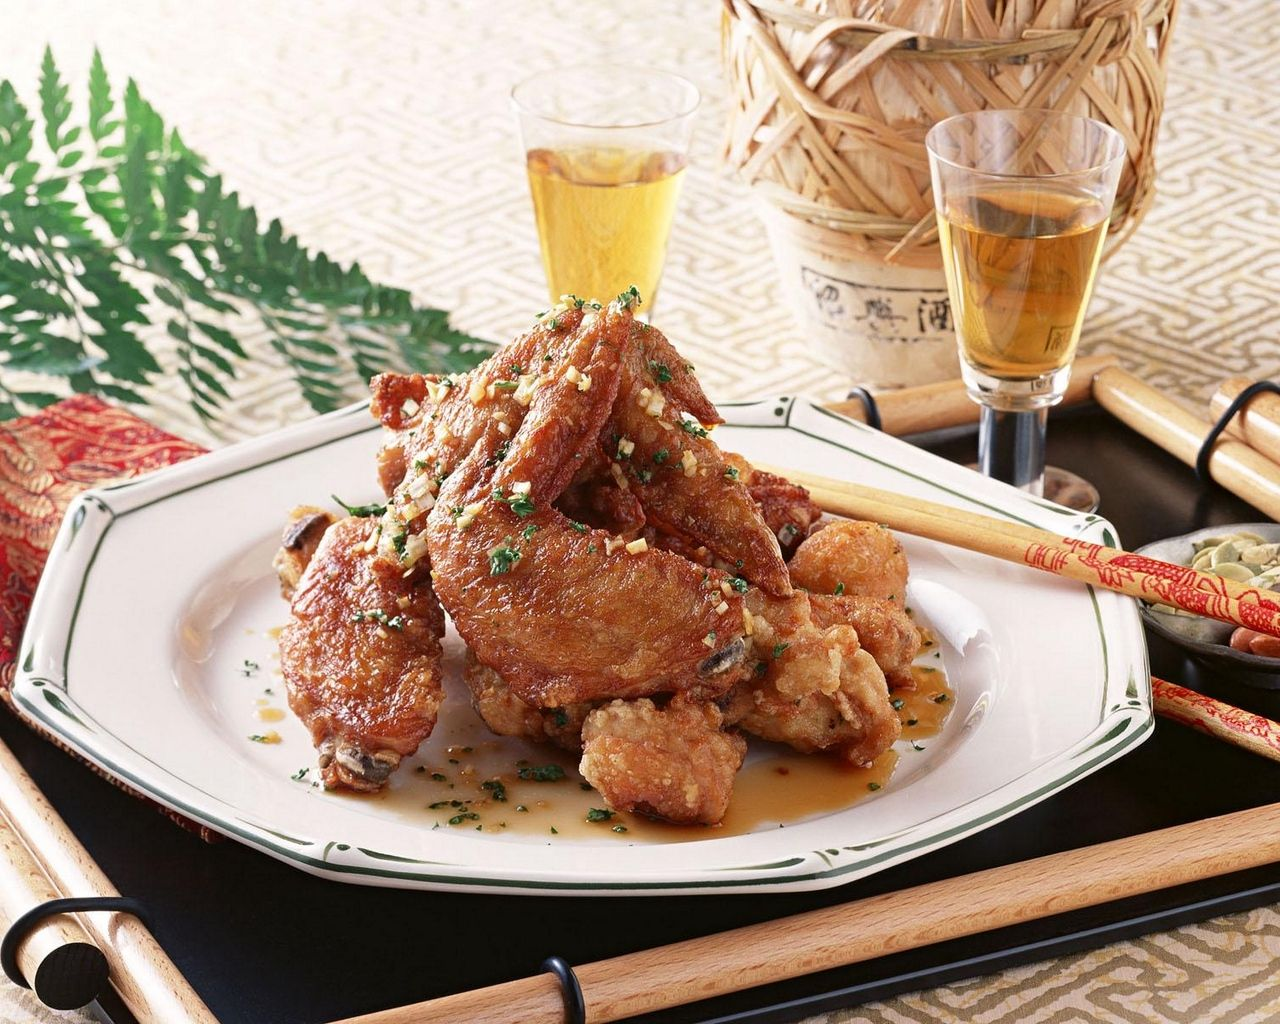 1280x1024 Download wallpaper 1280x1024 japanese cuisine, chicken wings, meat ...